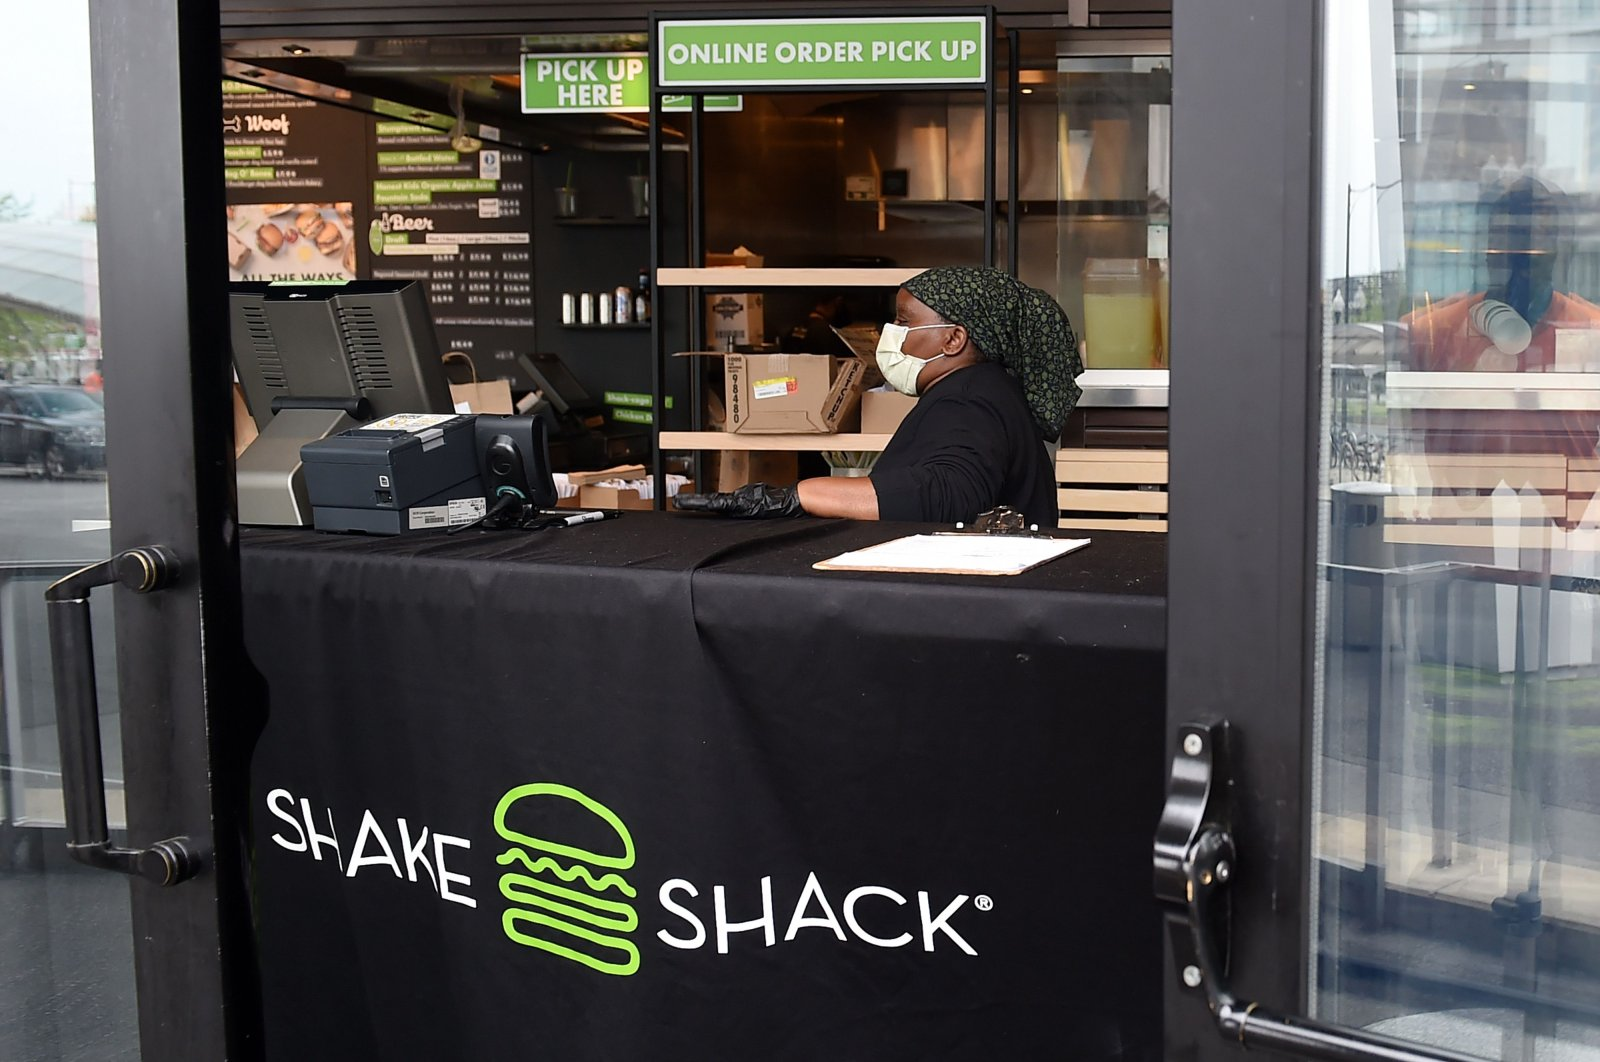 A Shake Shack employee wears a masks as she prepares food orders for pickup during the coronavirus pandemic, in Arlington, Virginia, U.S., April 20, 2020. (AFP Photo)